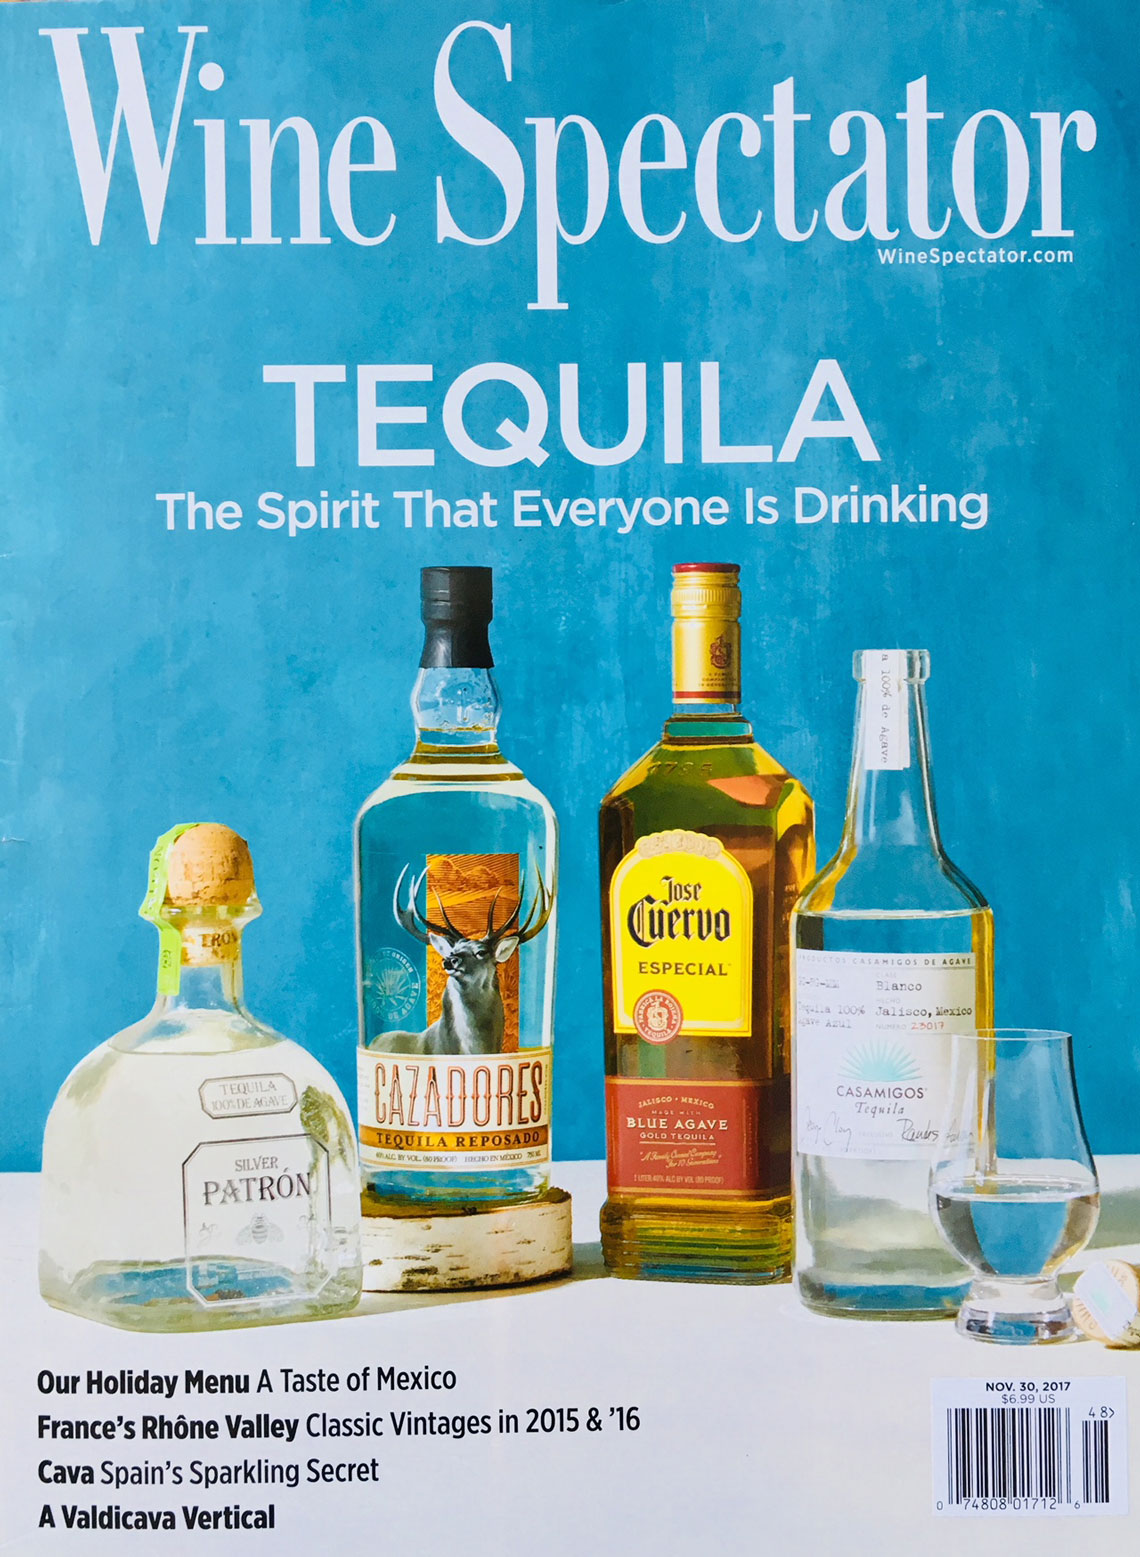 Evi-Abeler-Photography_Wine-Spectator-Tequila-Cover